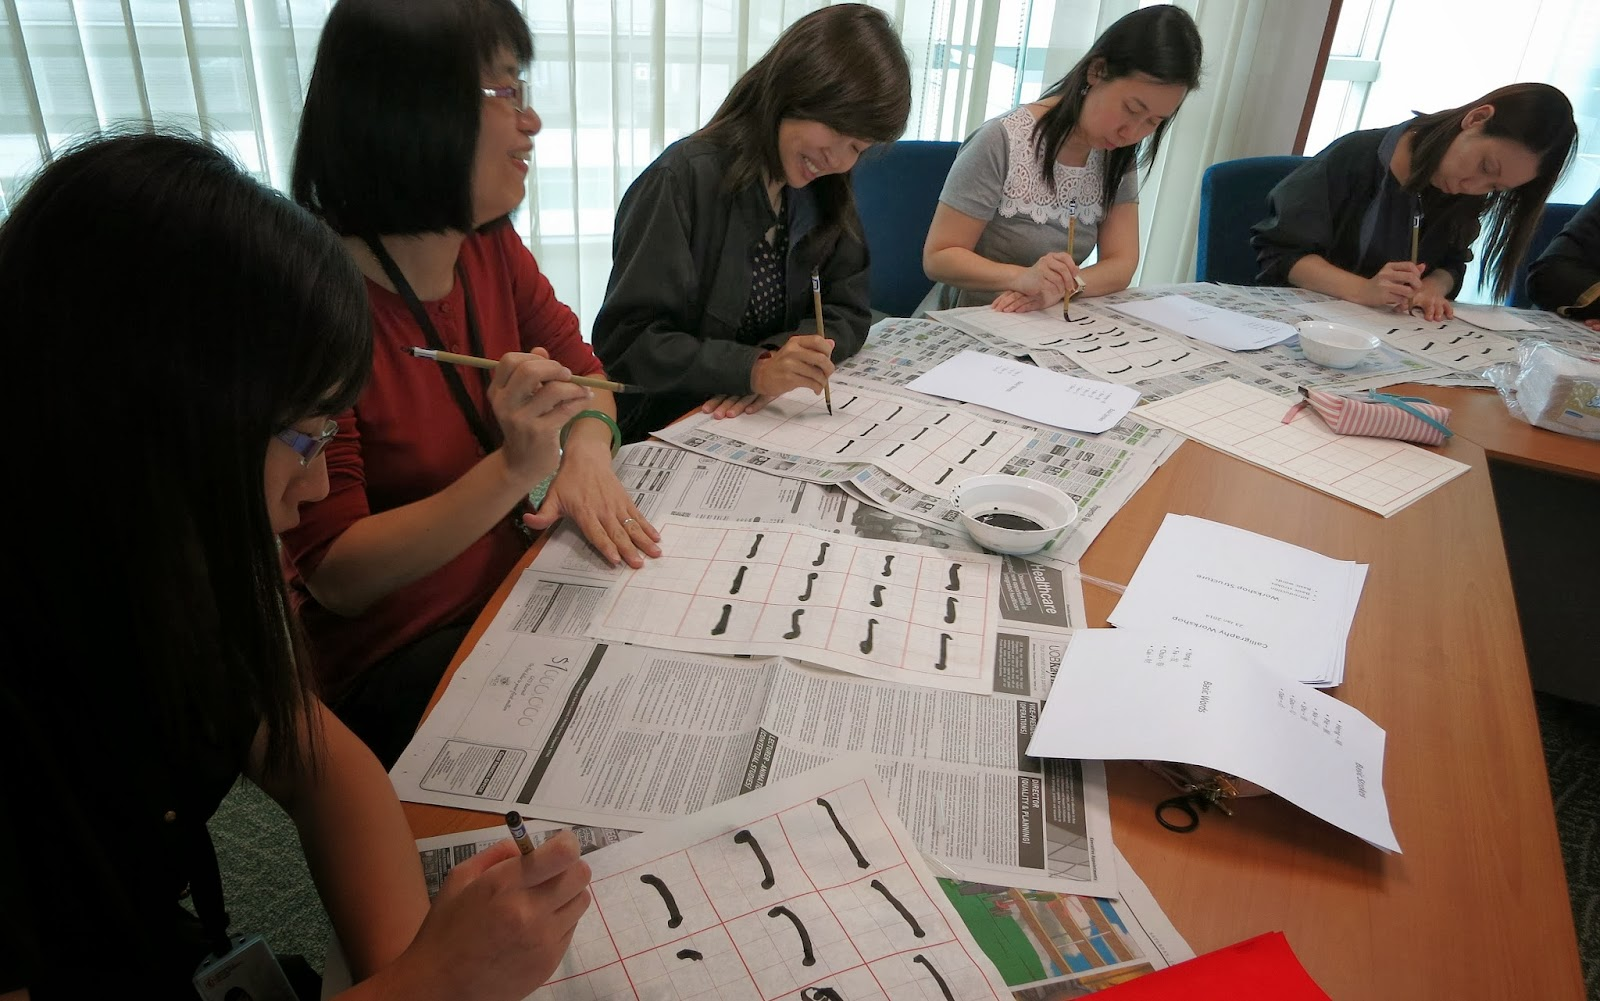 Liew Calligraphy - Chinese Calligraphy Service: Workshop